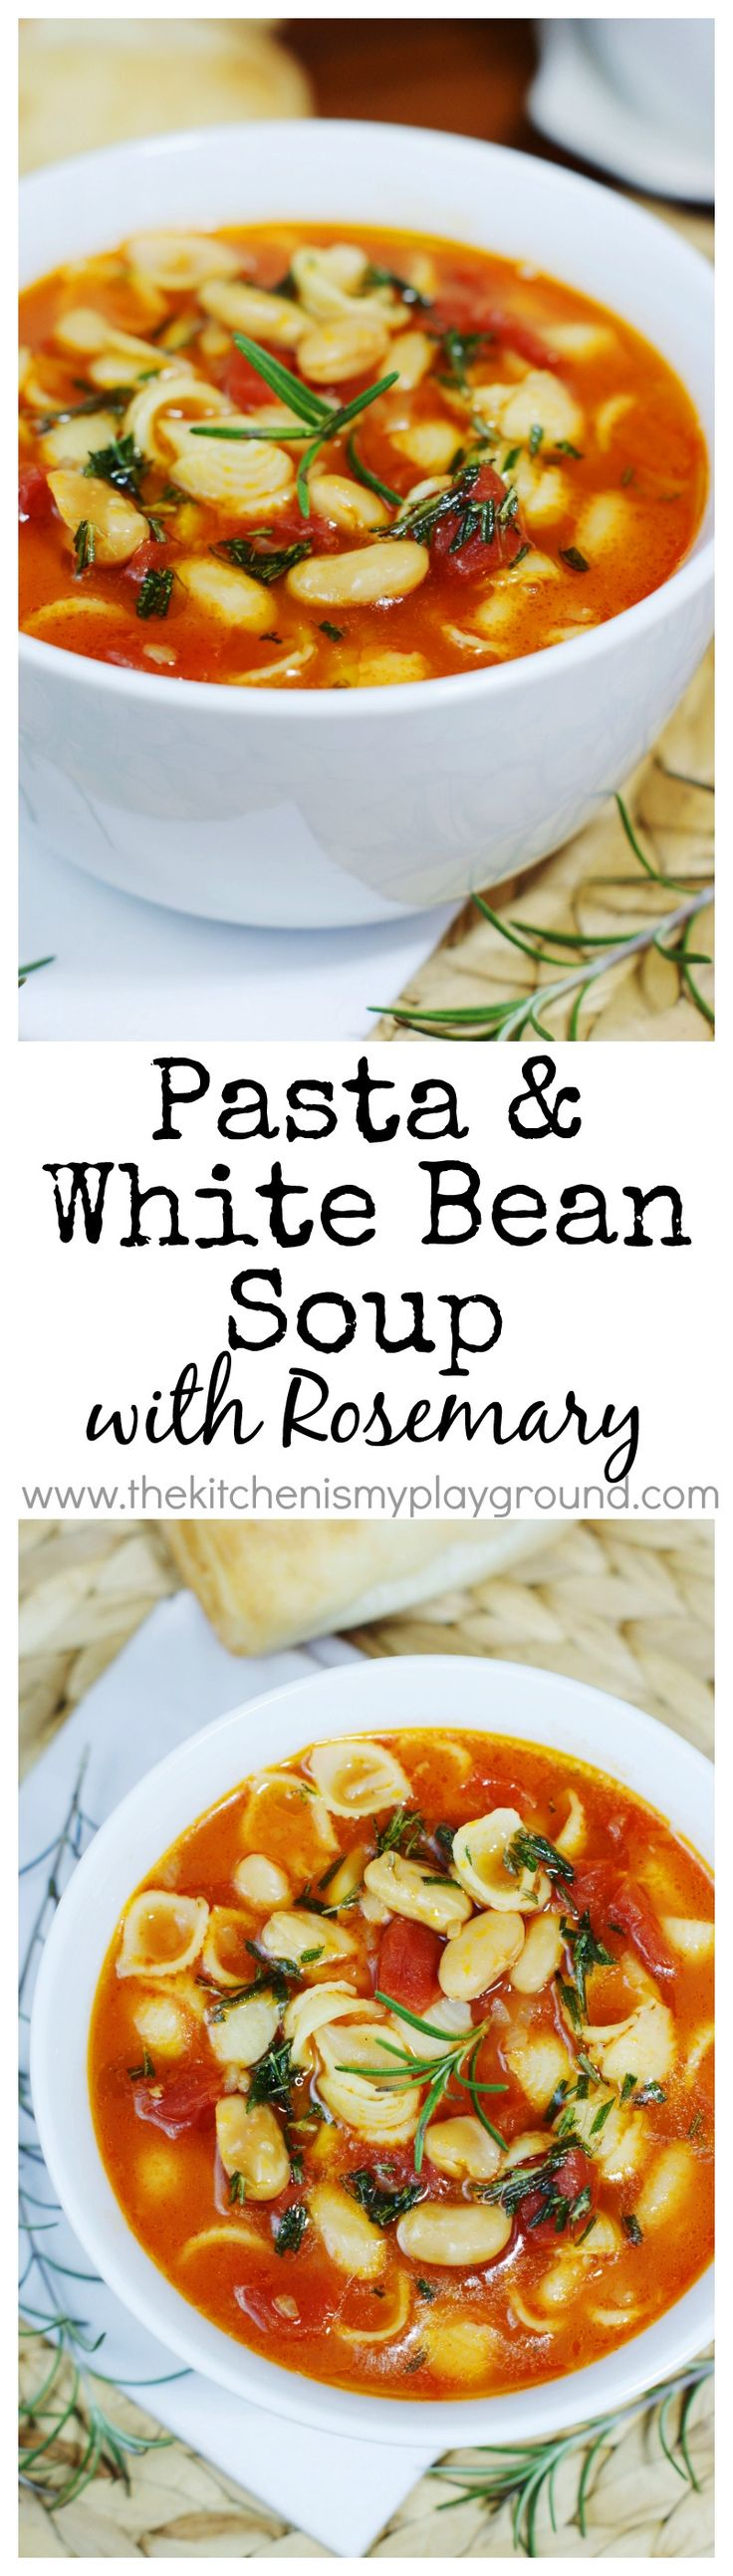 Pasta e Fagioli ~ flavorful, hearty pasta & white bean soup with rosemary. www.thekitchenismyplayground.com